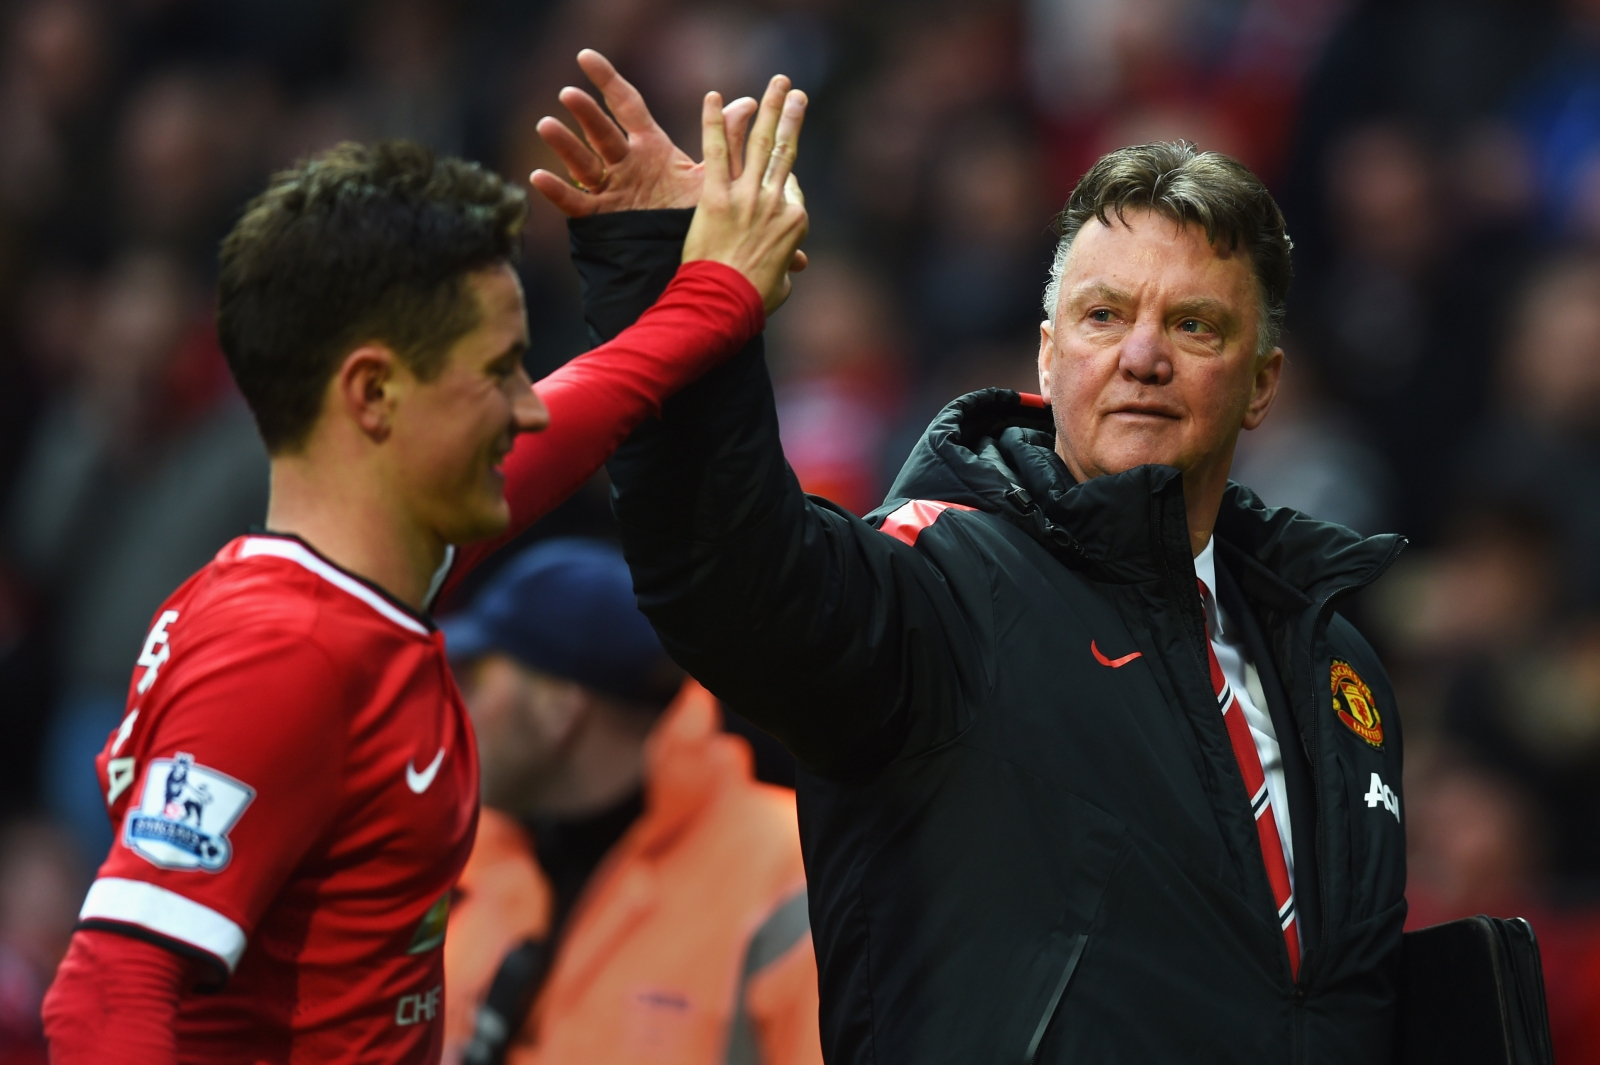 Manchester United: Ander Herrera ready to play wherever Louis van Gaal wants